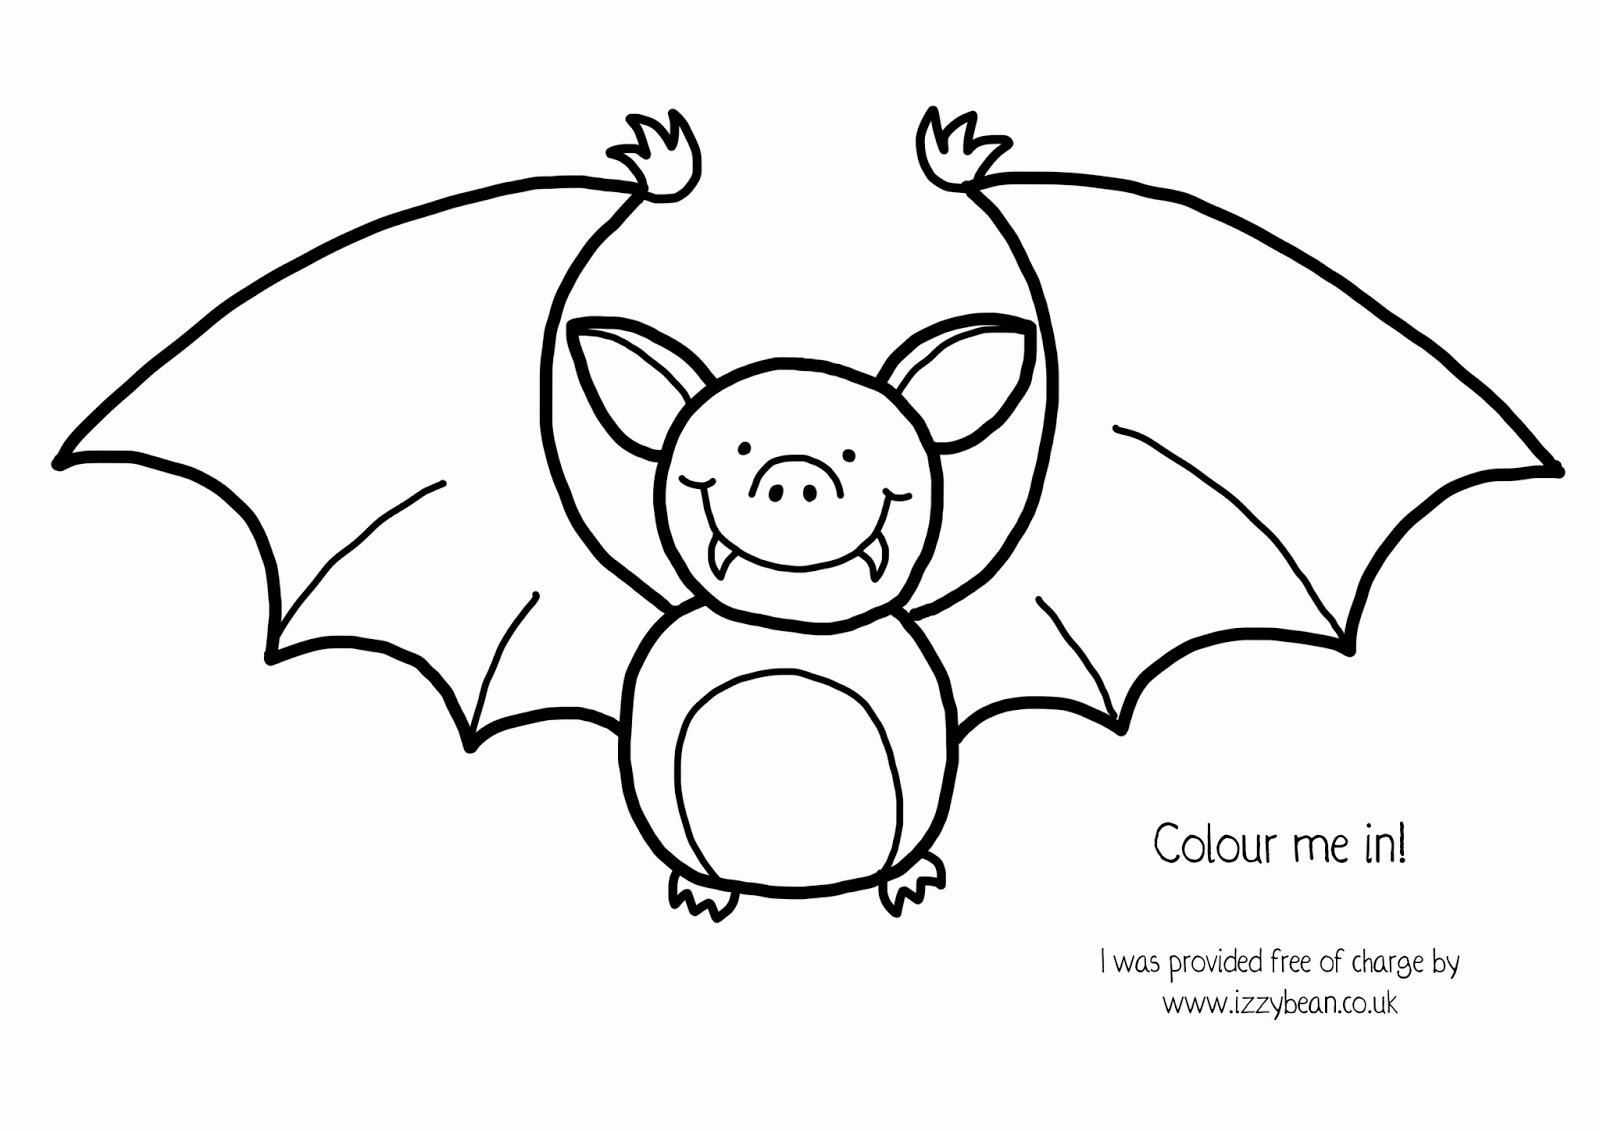 izzy bean illustrations step by step halloween special bat with